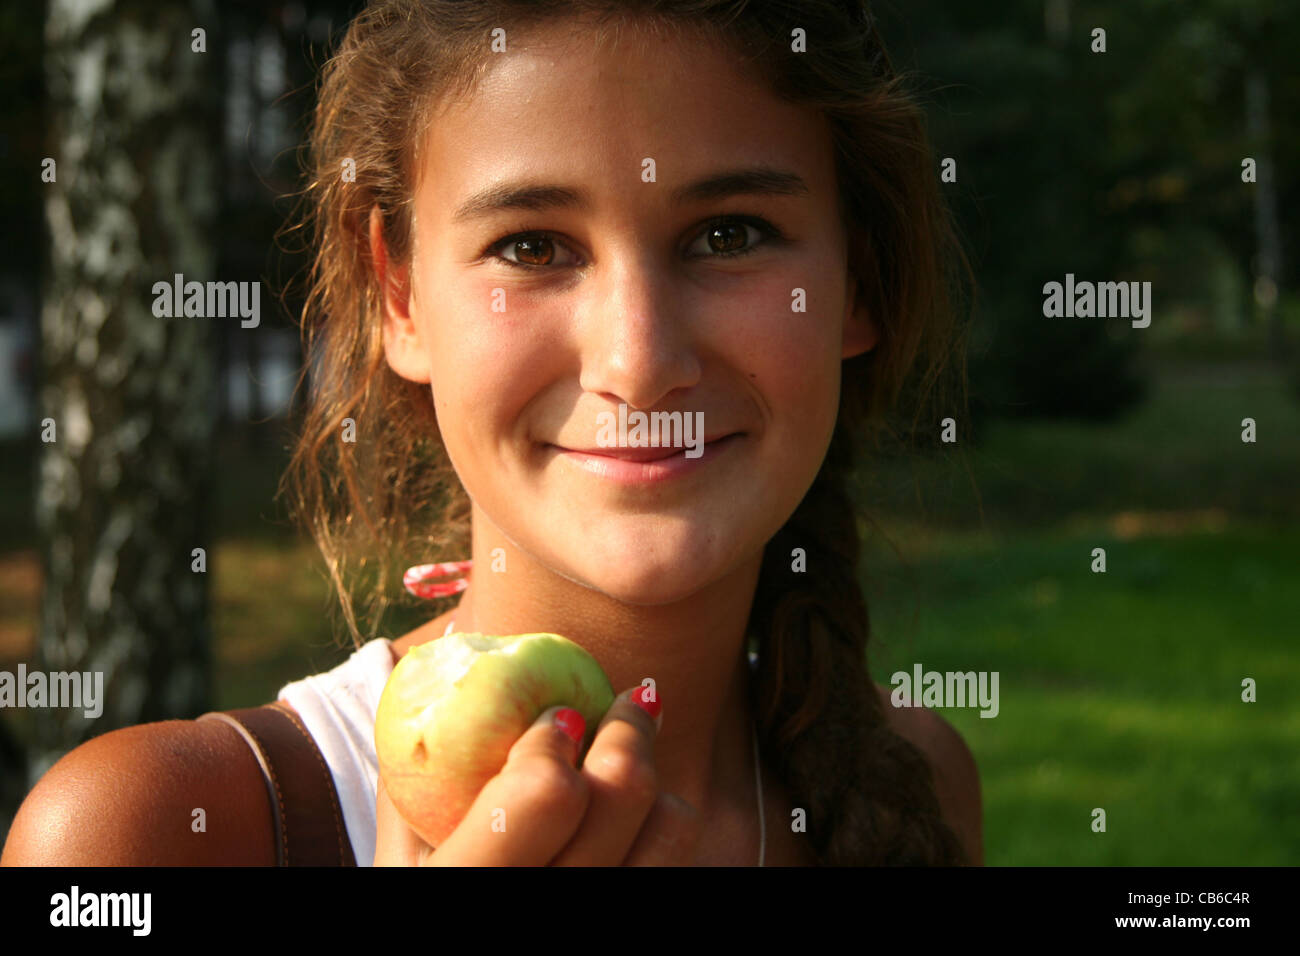 Portrait of a young teenager, girl, ready to eat an apple. Outside, garden, natural lighting, straight look, summer. - Stock Image